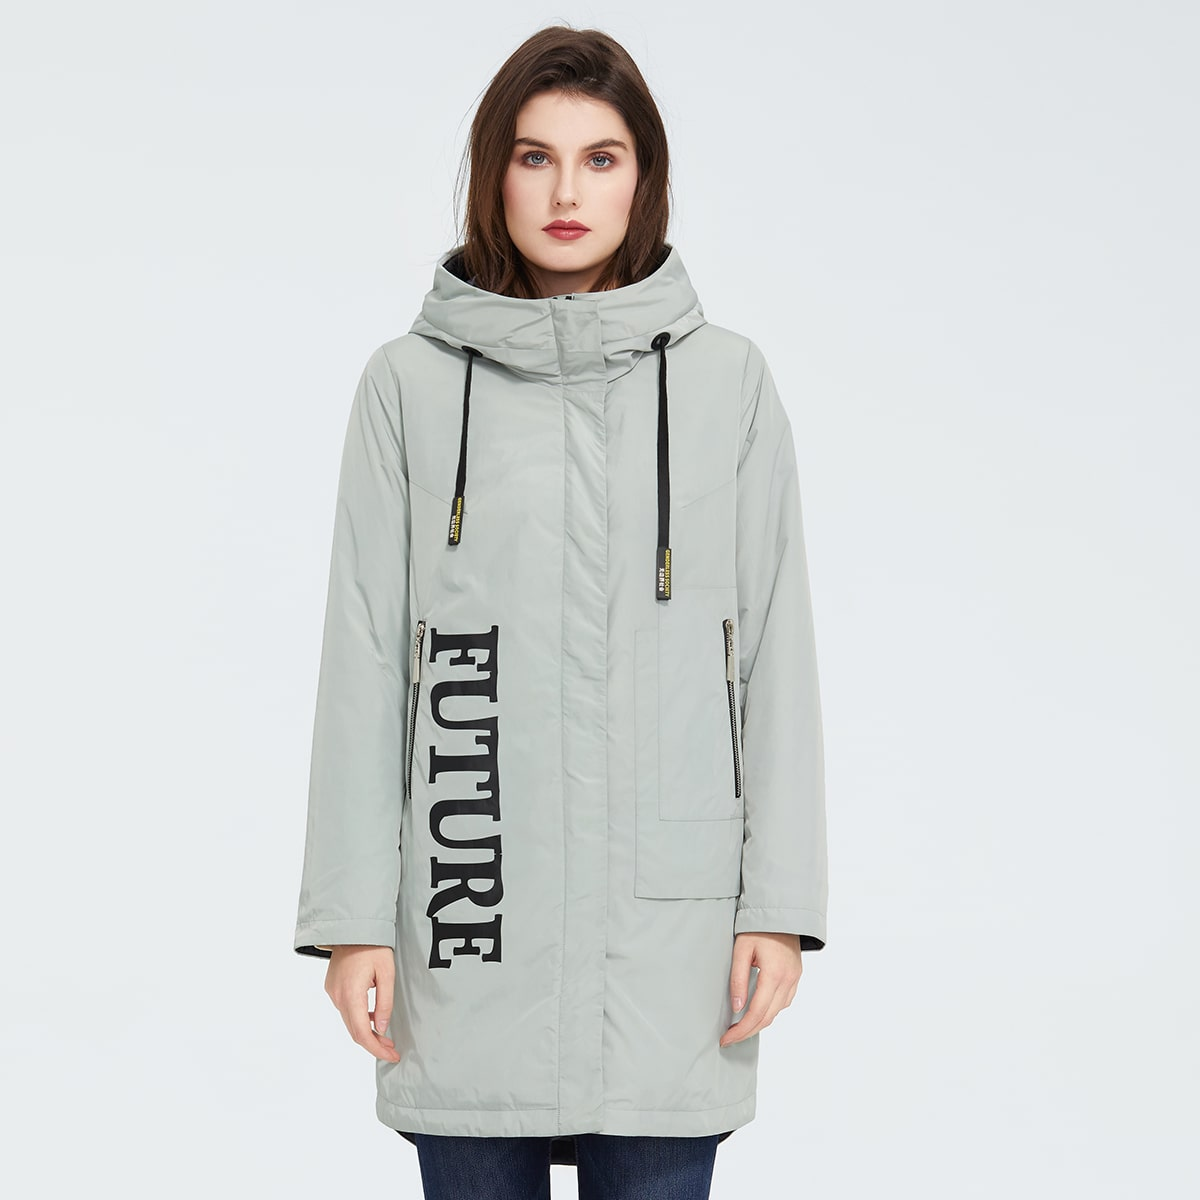 Ziai Letter Graphic Drawstring Hooded Padded Coat